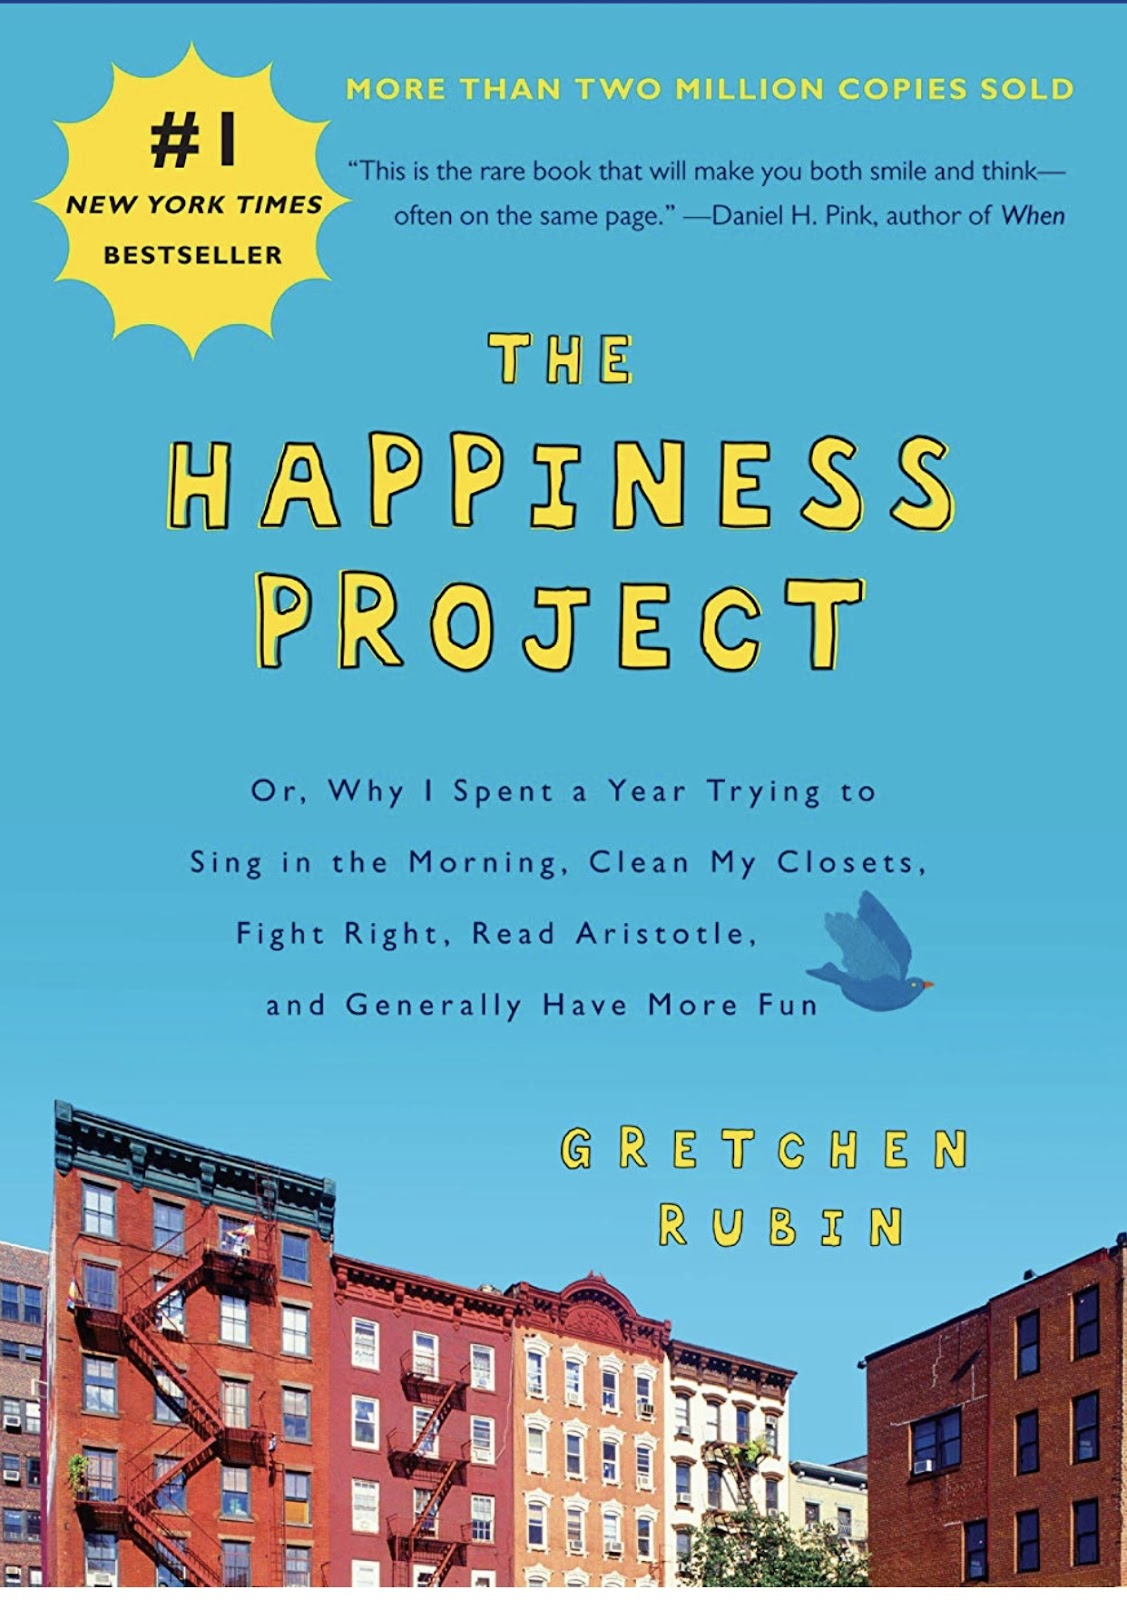 The Happiness Project by Gretchen Rubin for people who like to read.